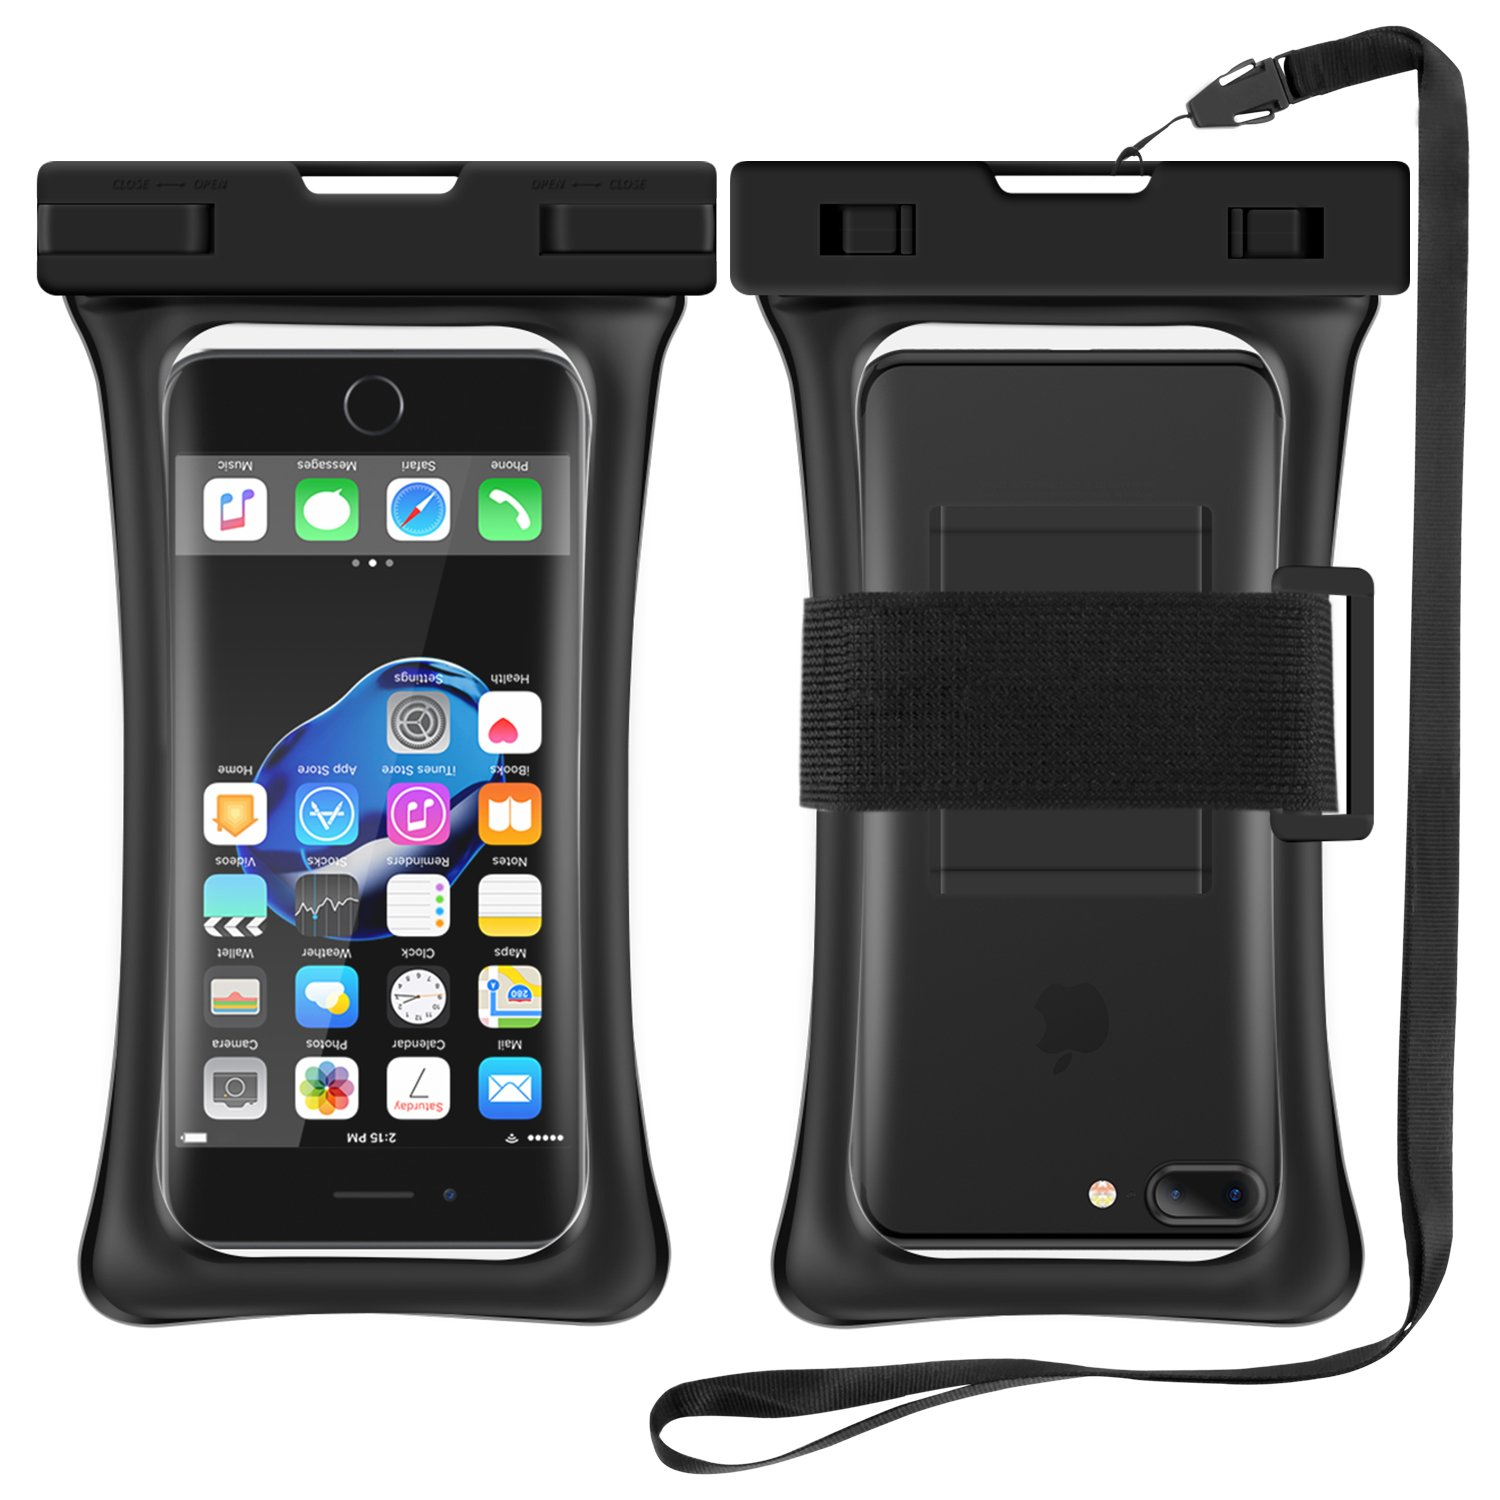 RANVOO [Floating] Waterproof Phone Pouch, Dry Bag Case for iPhone XS Max XR X 8 Plus 7 Plus 6 6s Plus, Samsung Galaxy S9 Plus S8 Edge Note 8 7, LG G5 G6, up to 6.8''- Black by RANVOO